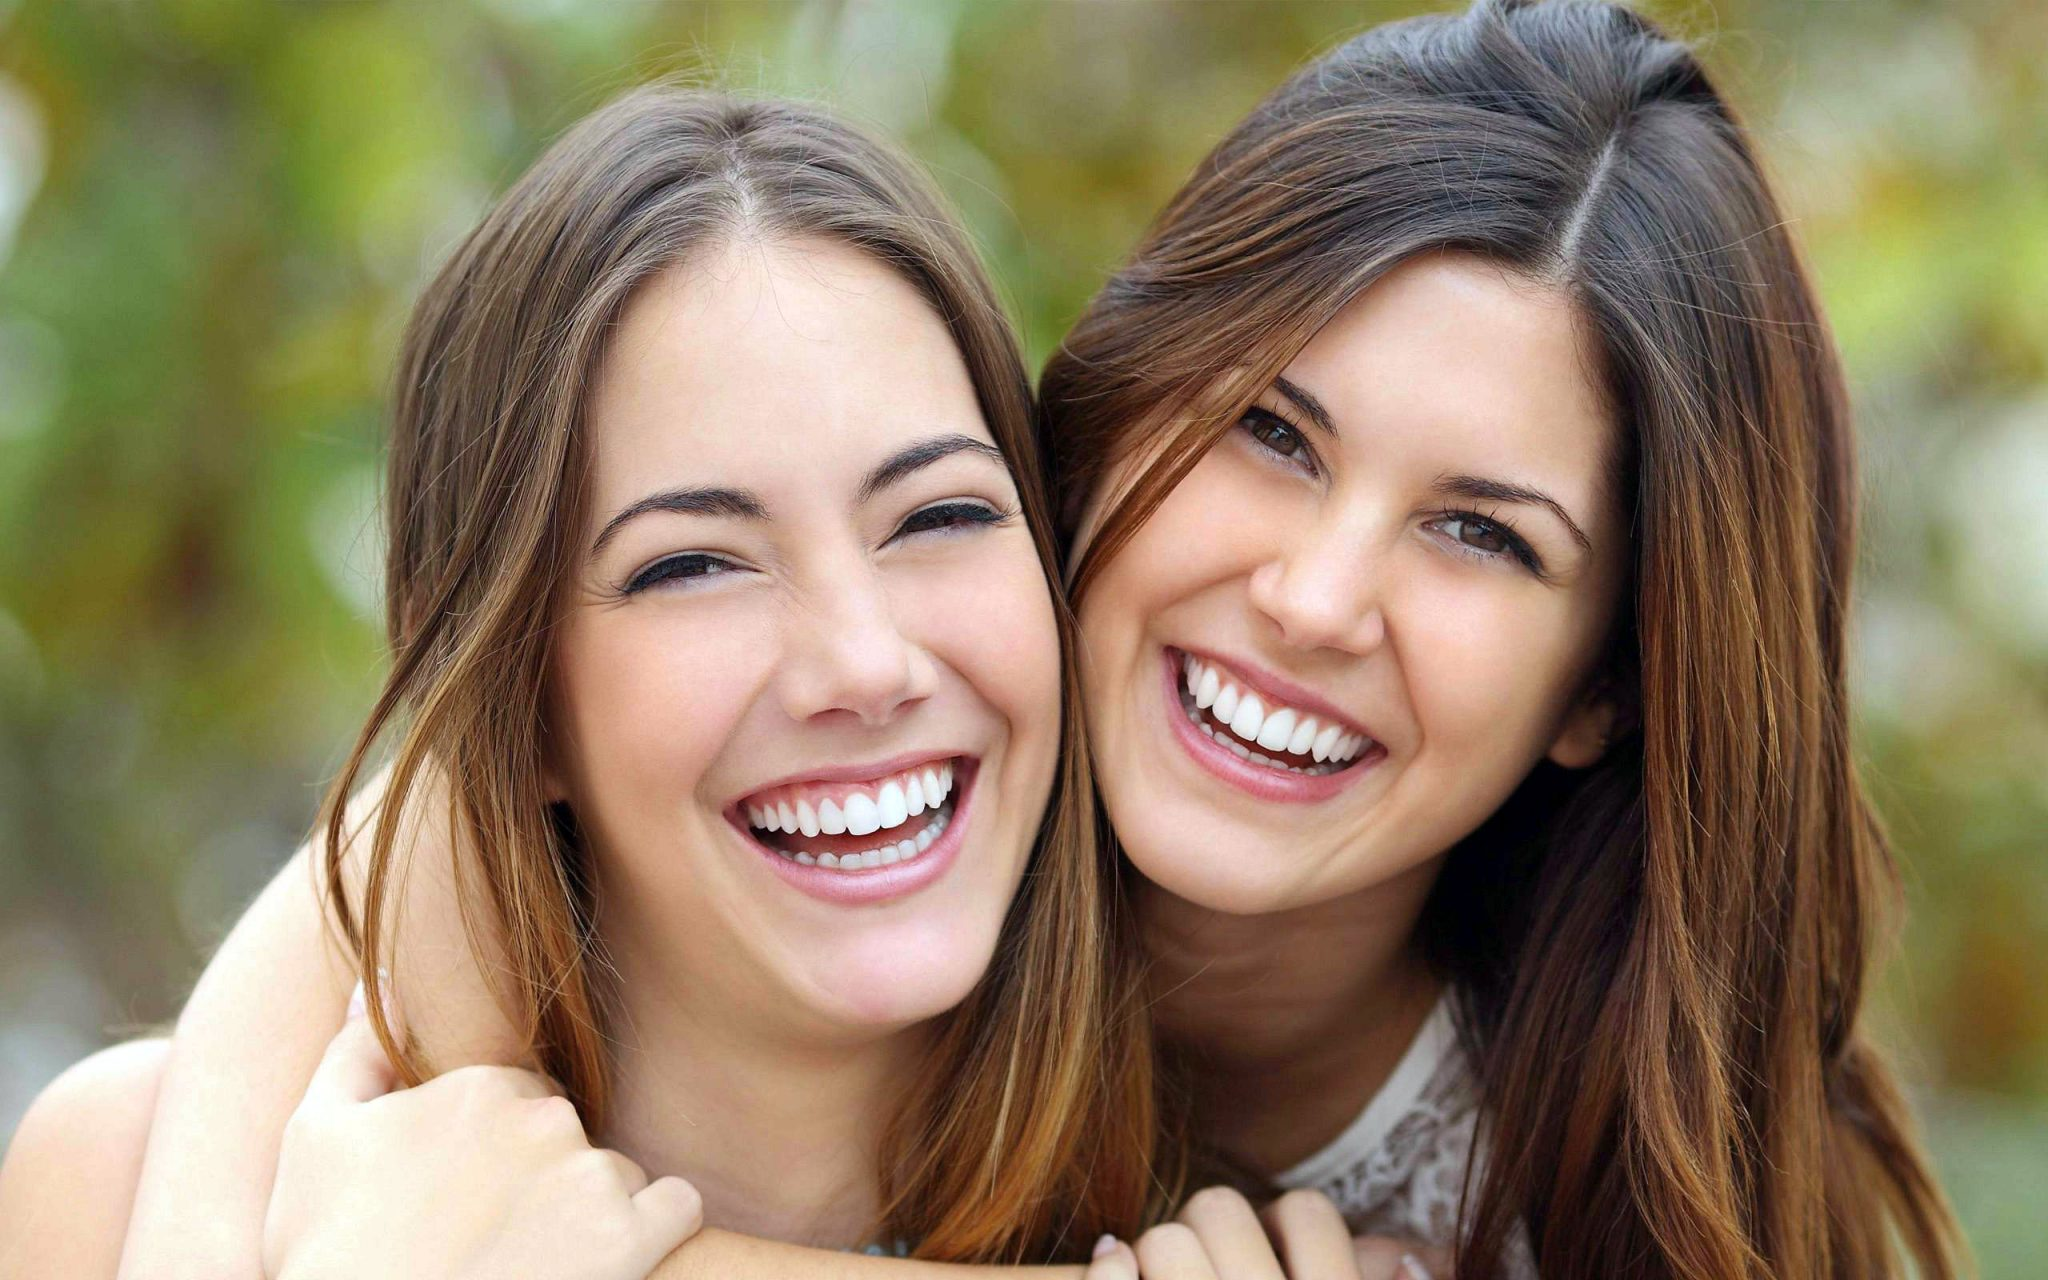 Are you prone to cavities?